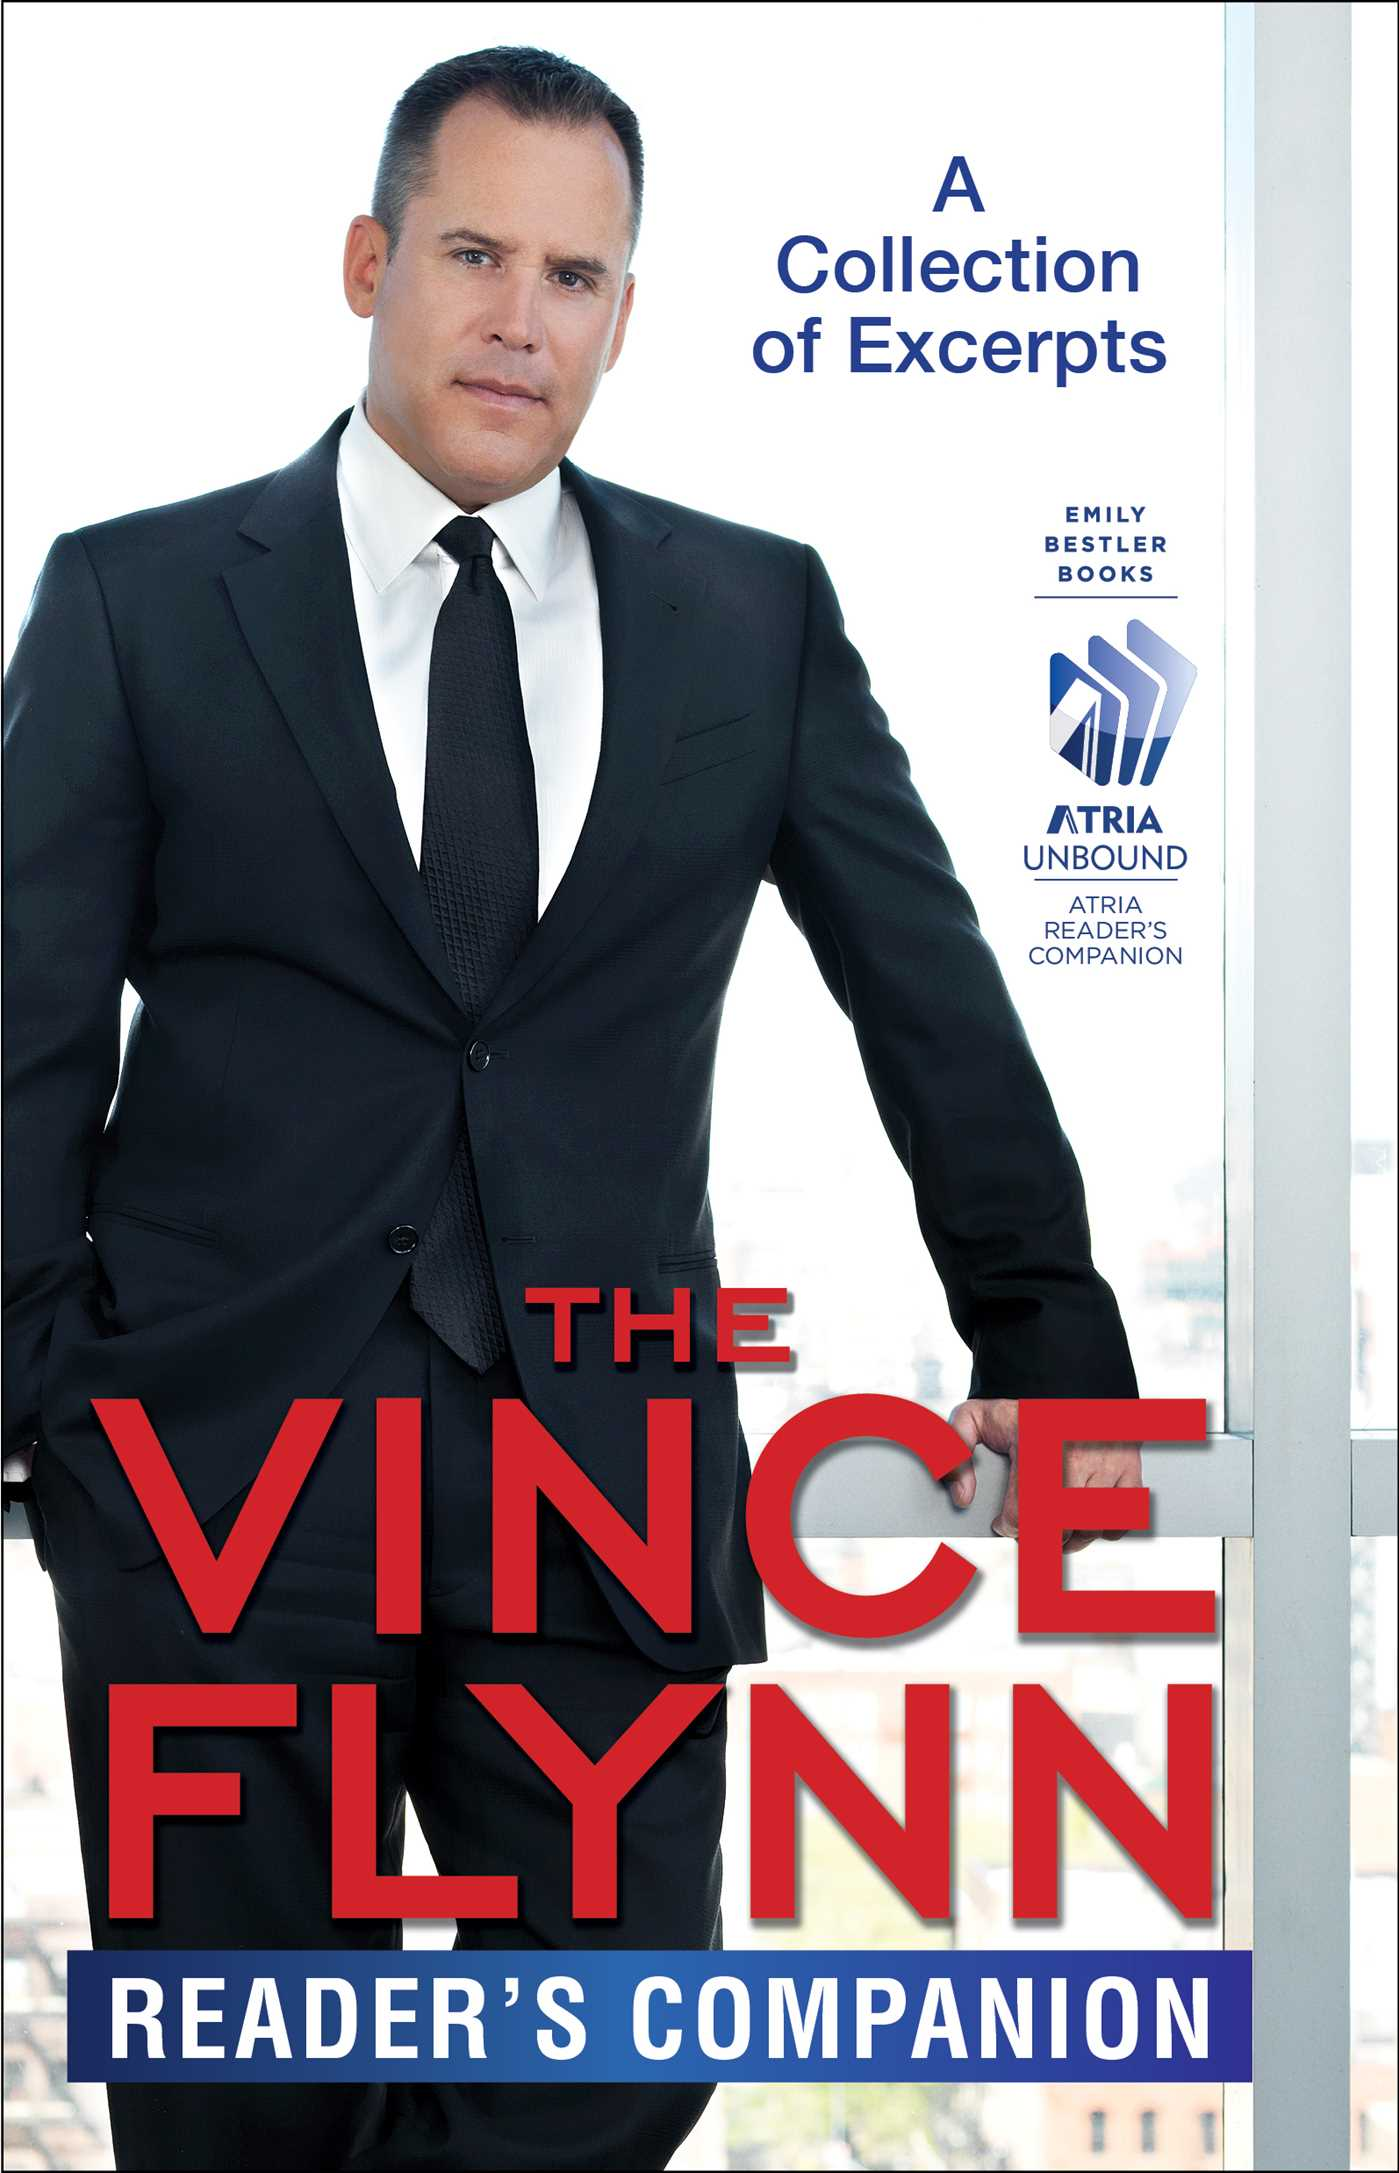 Vince-flynn-readers-companion-9781451694352_hr